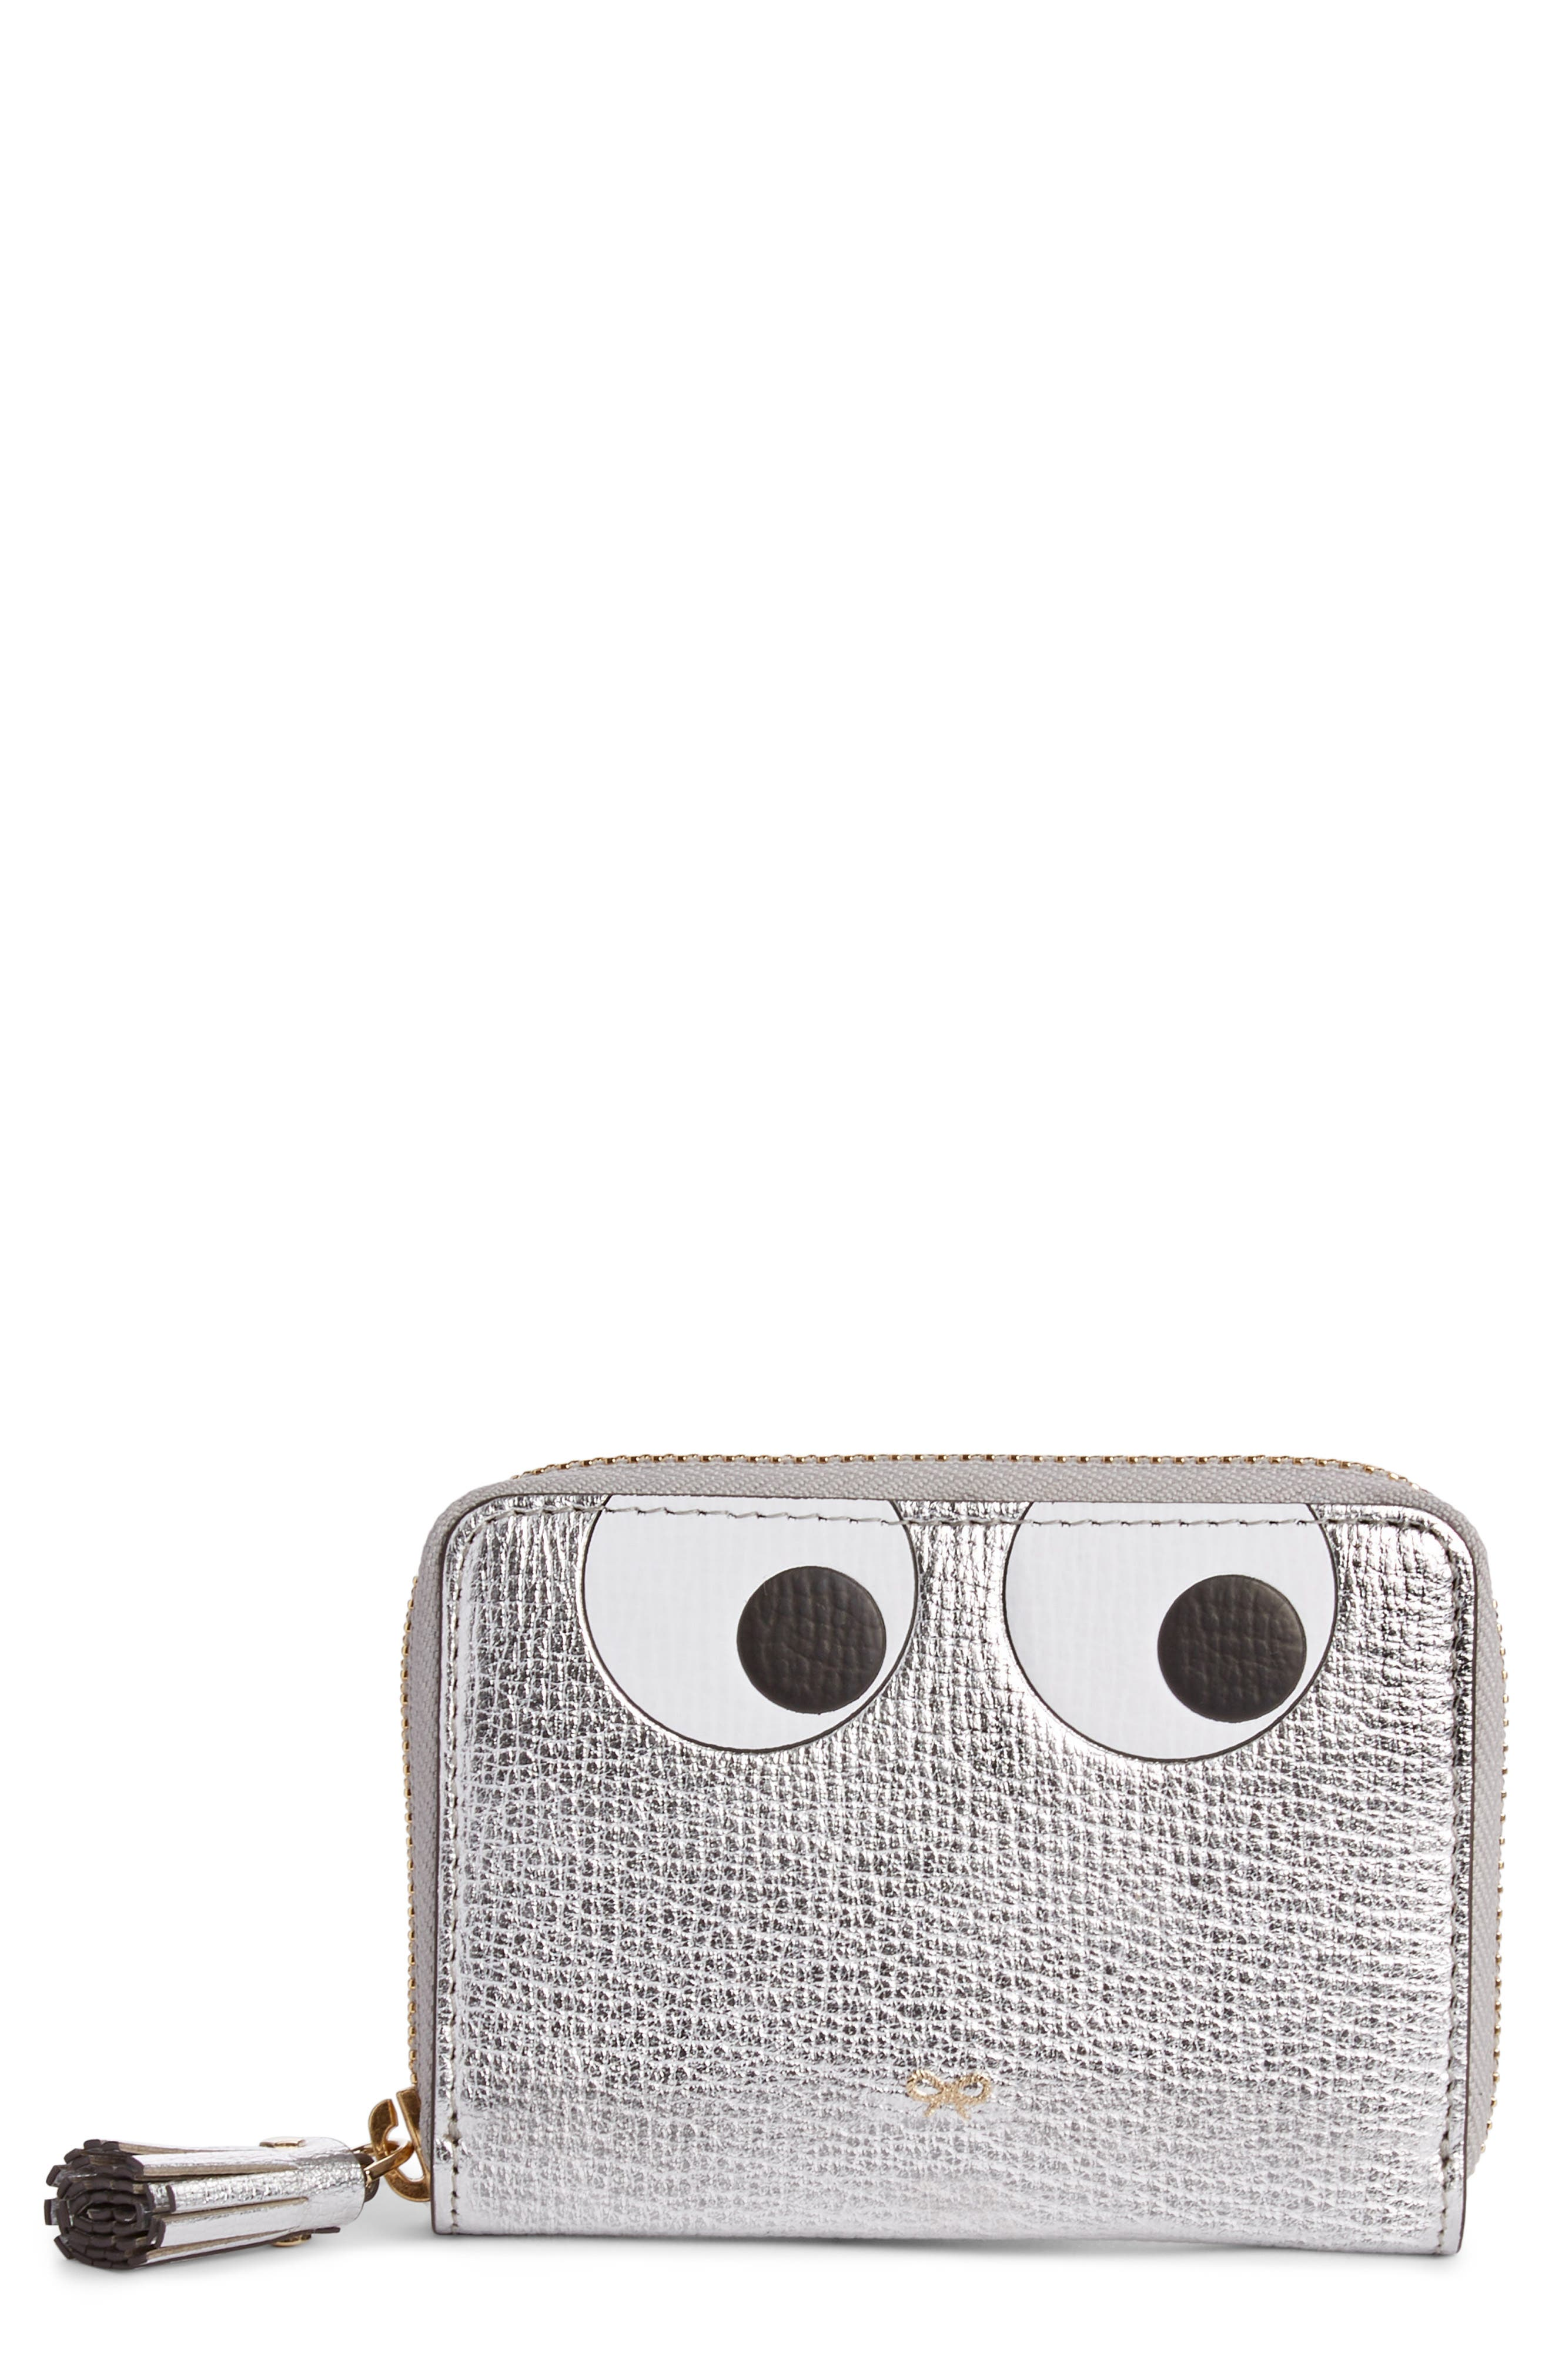 Eyes Small Metallic Leather Zip Around Wallet,                         Main,                         color, SILVER